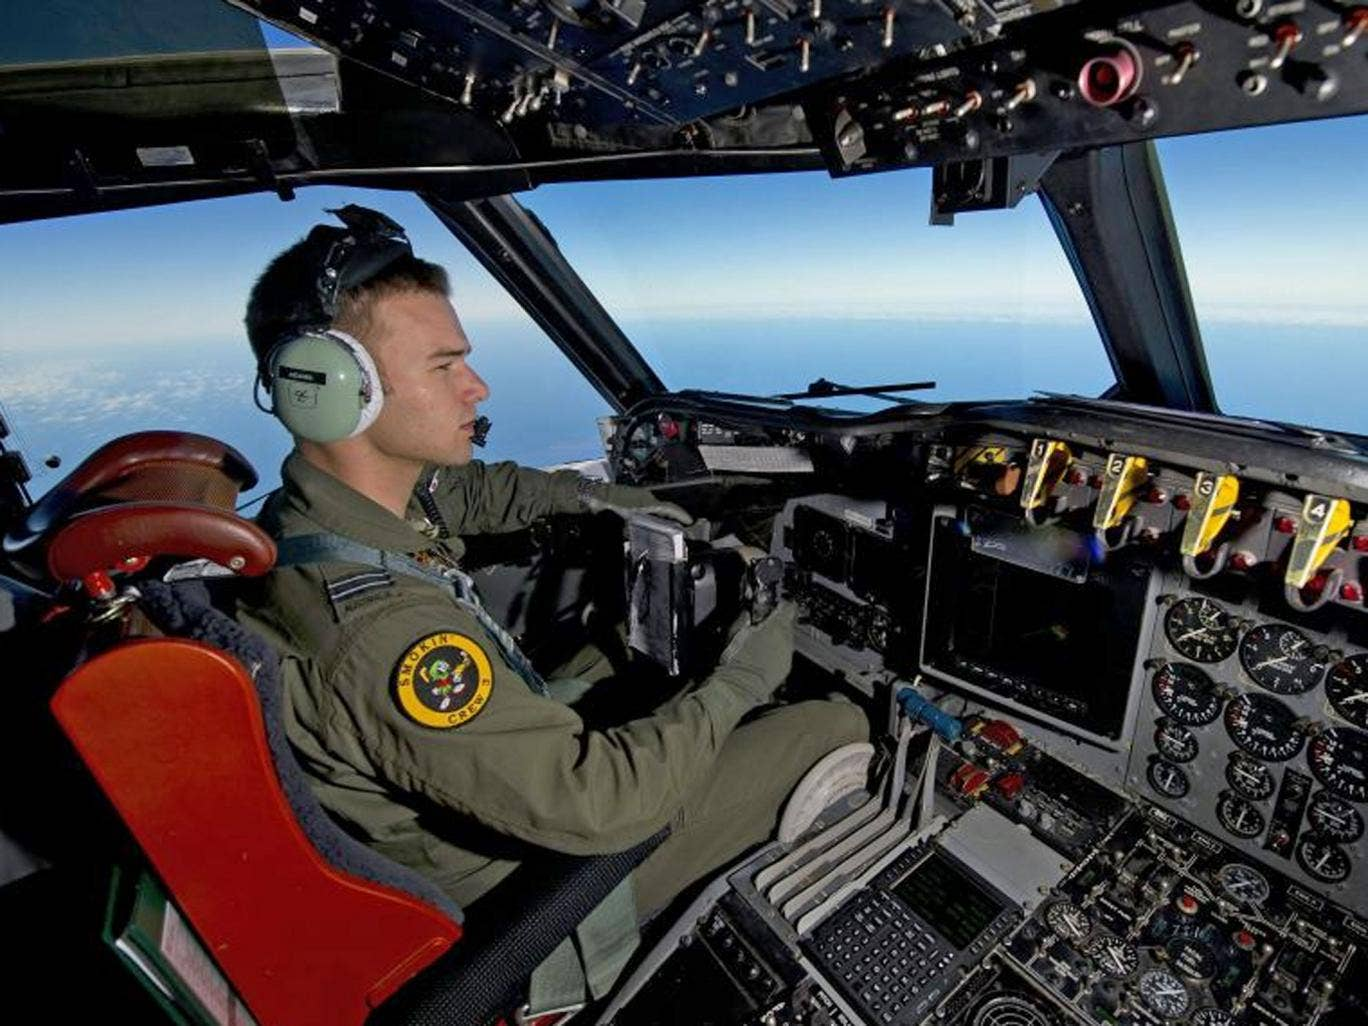 Royal Australian Air Force pilot, Flight Lieutenant Russell Adams from the tenth Squadron, steering his AP-3C Orion over the Southern Indian Ocean during the search for missing Malaysian Airlines flight MH370